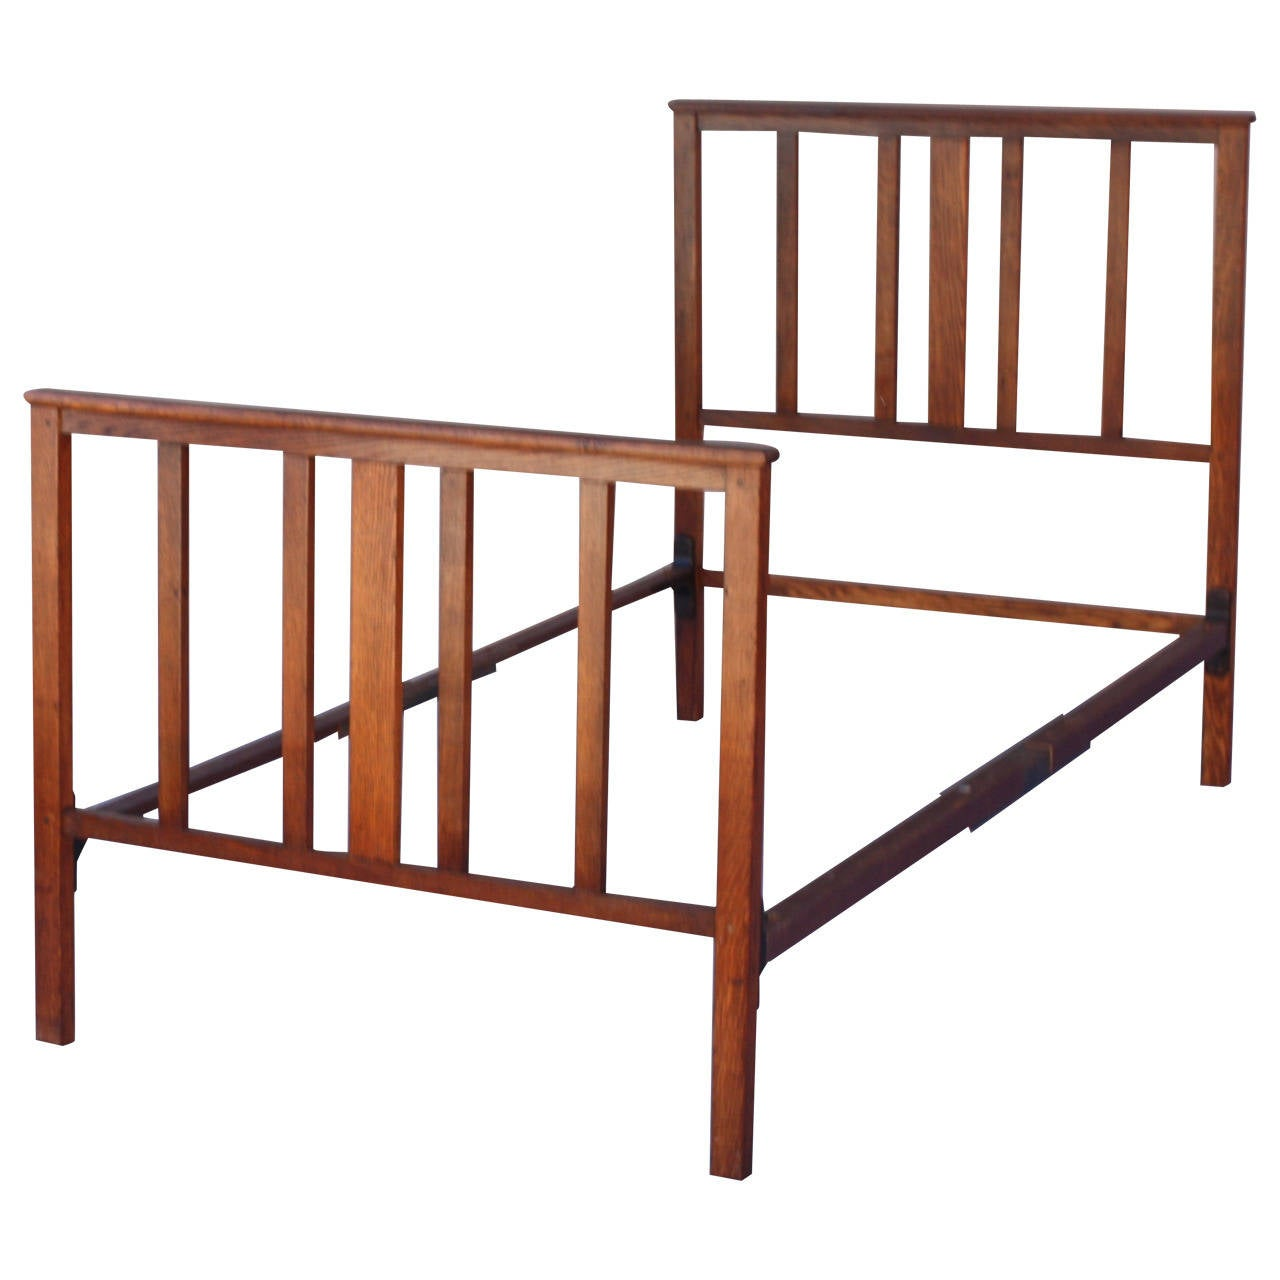 Antique arts and crafts furniture - Circa 1910 Antique Arts And Crafts Bed 1